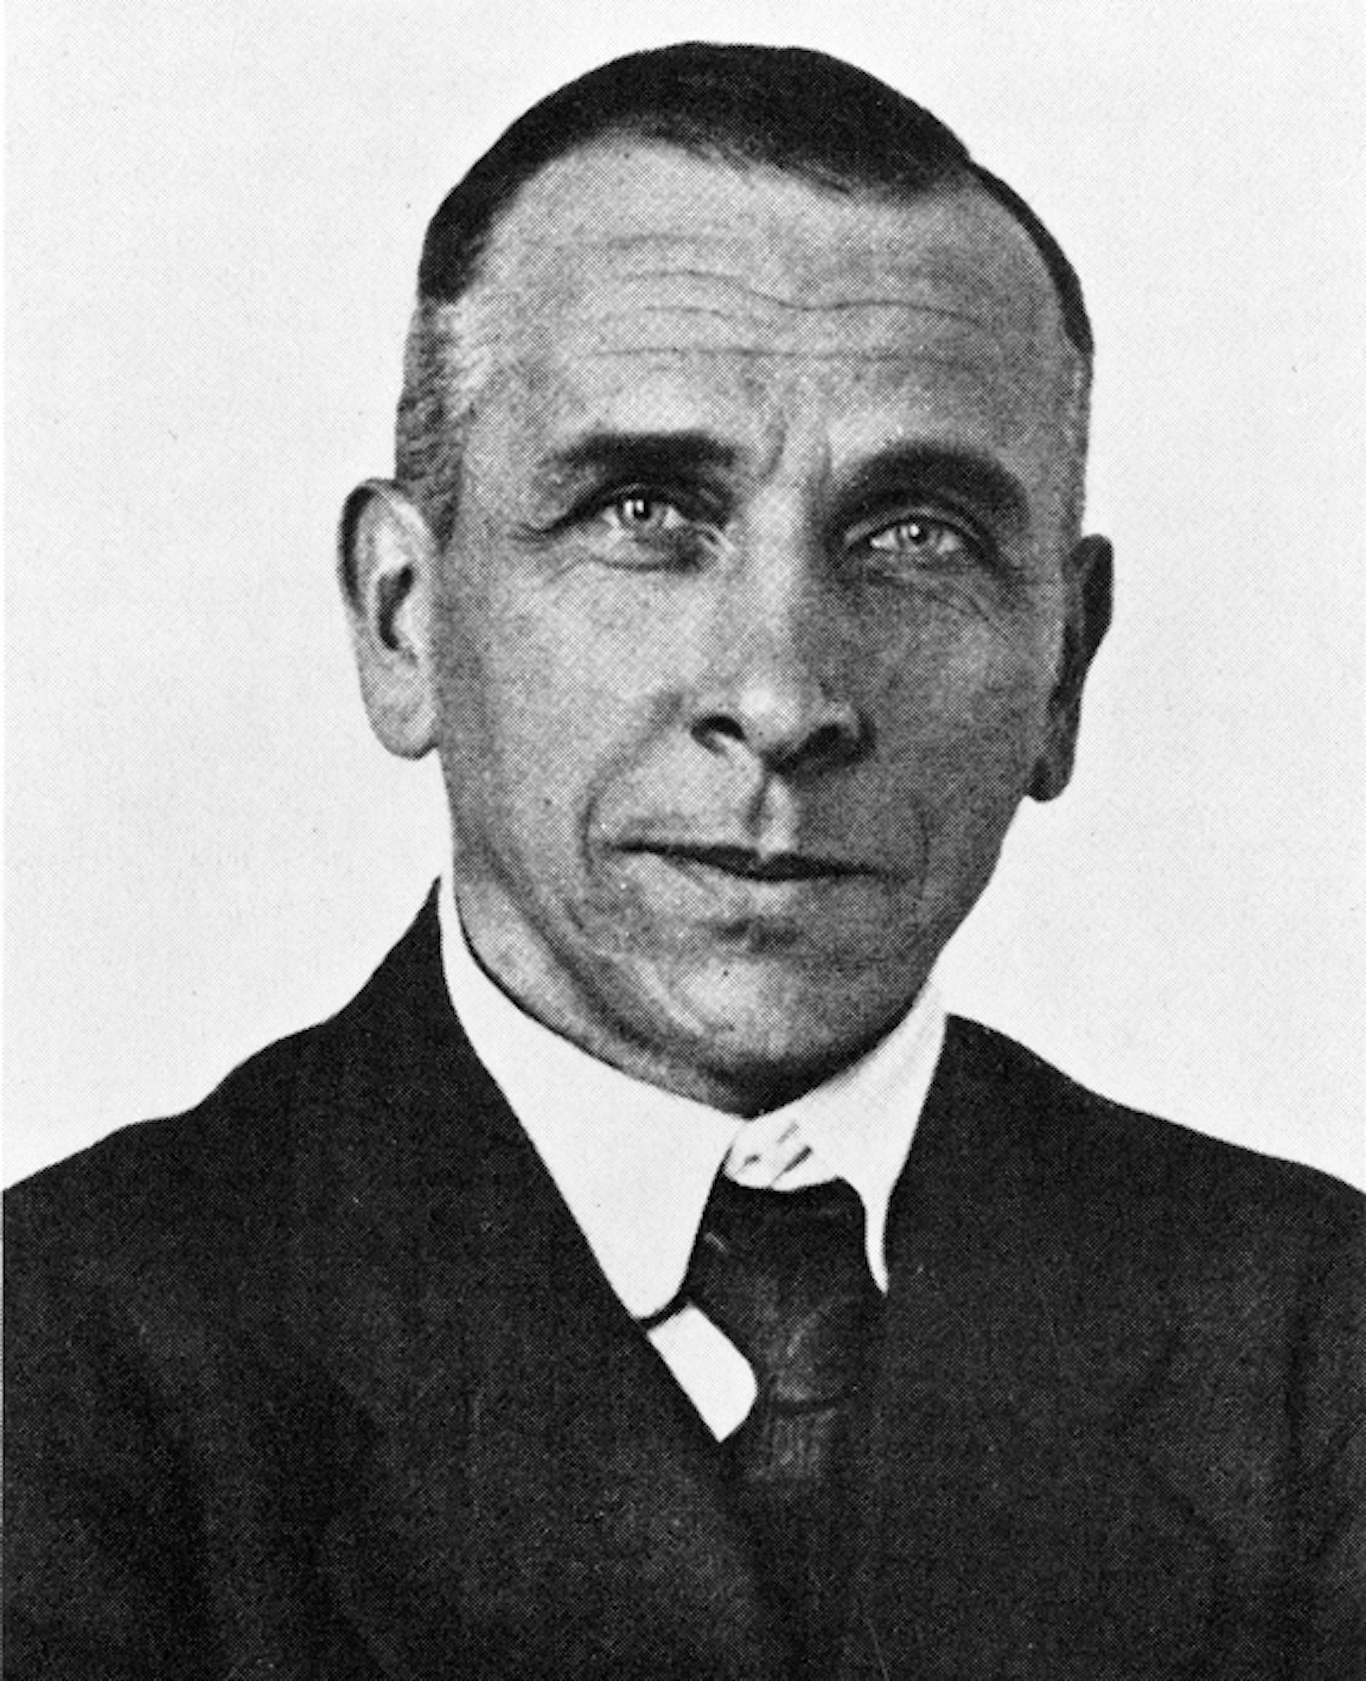 meteorologist alfred wegener essay Alfred wegener: beginnings alfred wegener was born on november 1, 1880, in germany's capital city, berlin his father, richard wegener, was a classical languages teacher and pastor his mother, anna wegener, was a housewife the wegener family of two adults and five children – alfred was the youngest – was quite well-off financially.